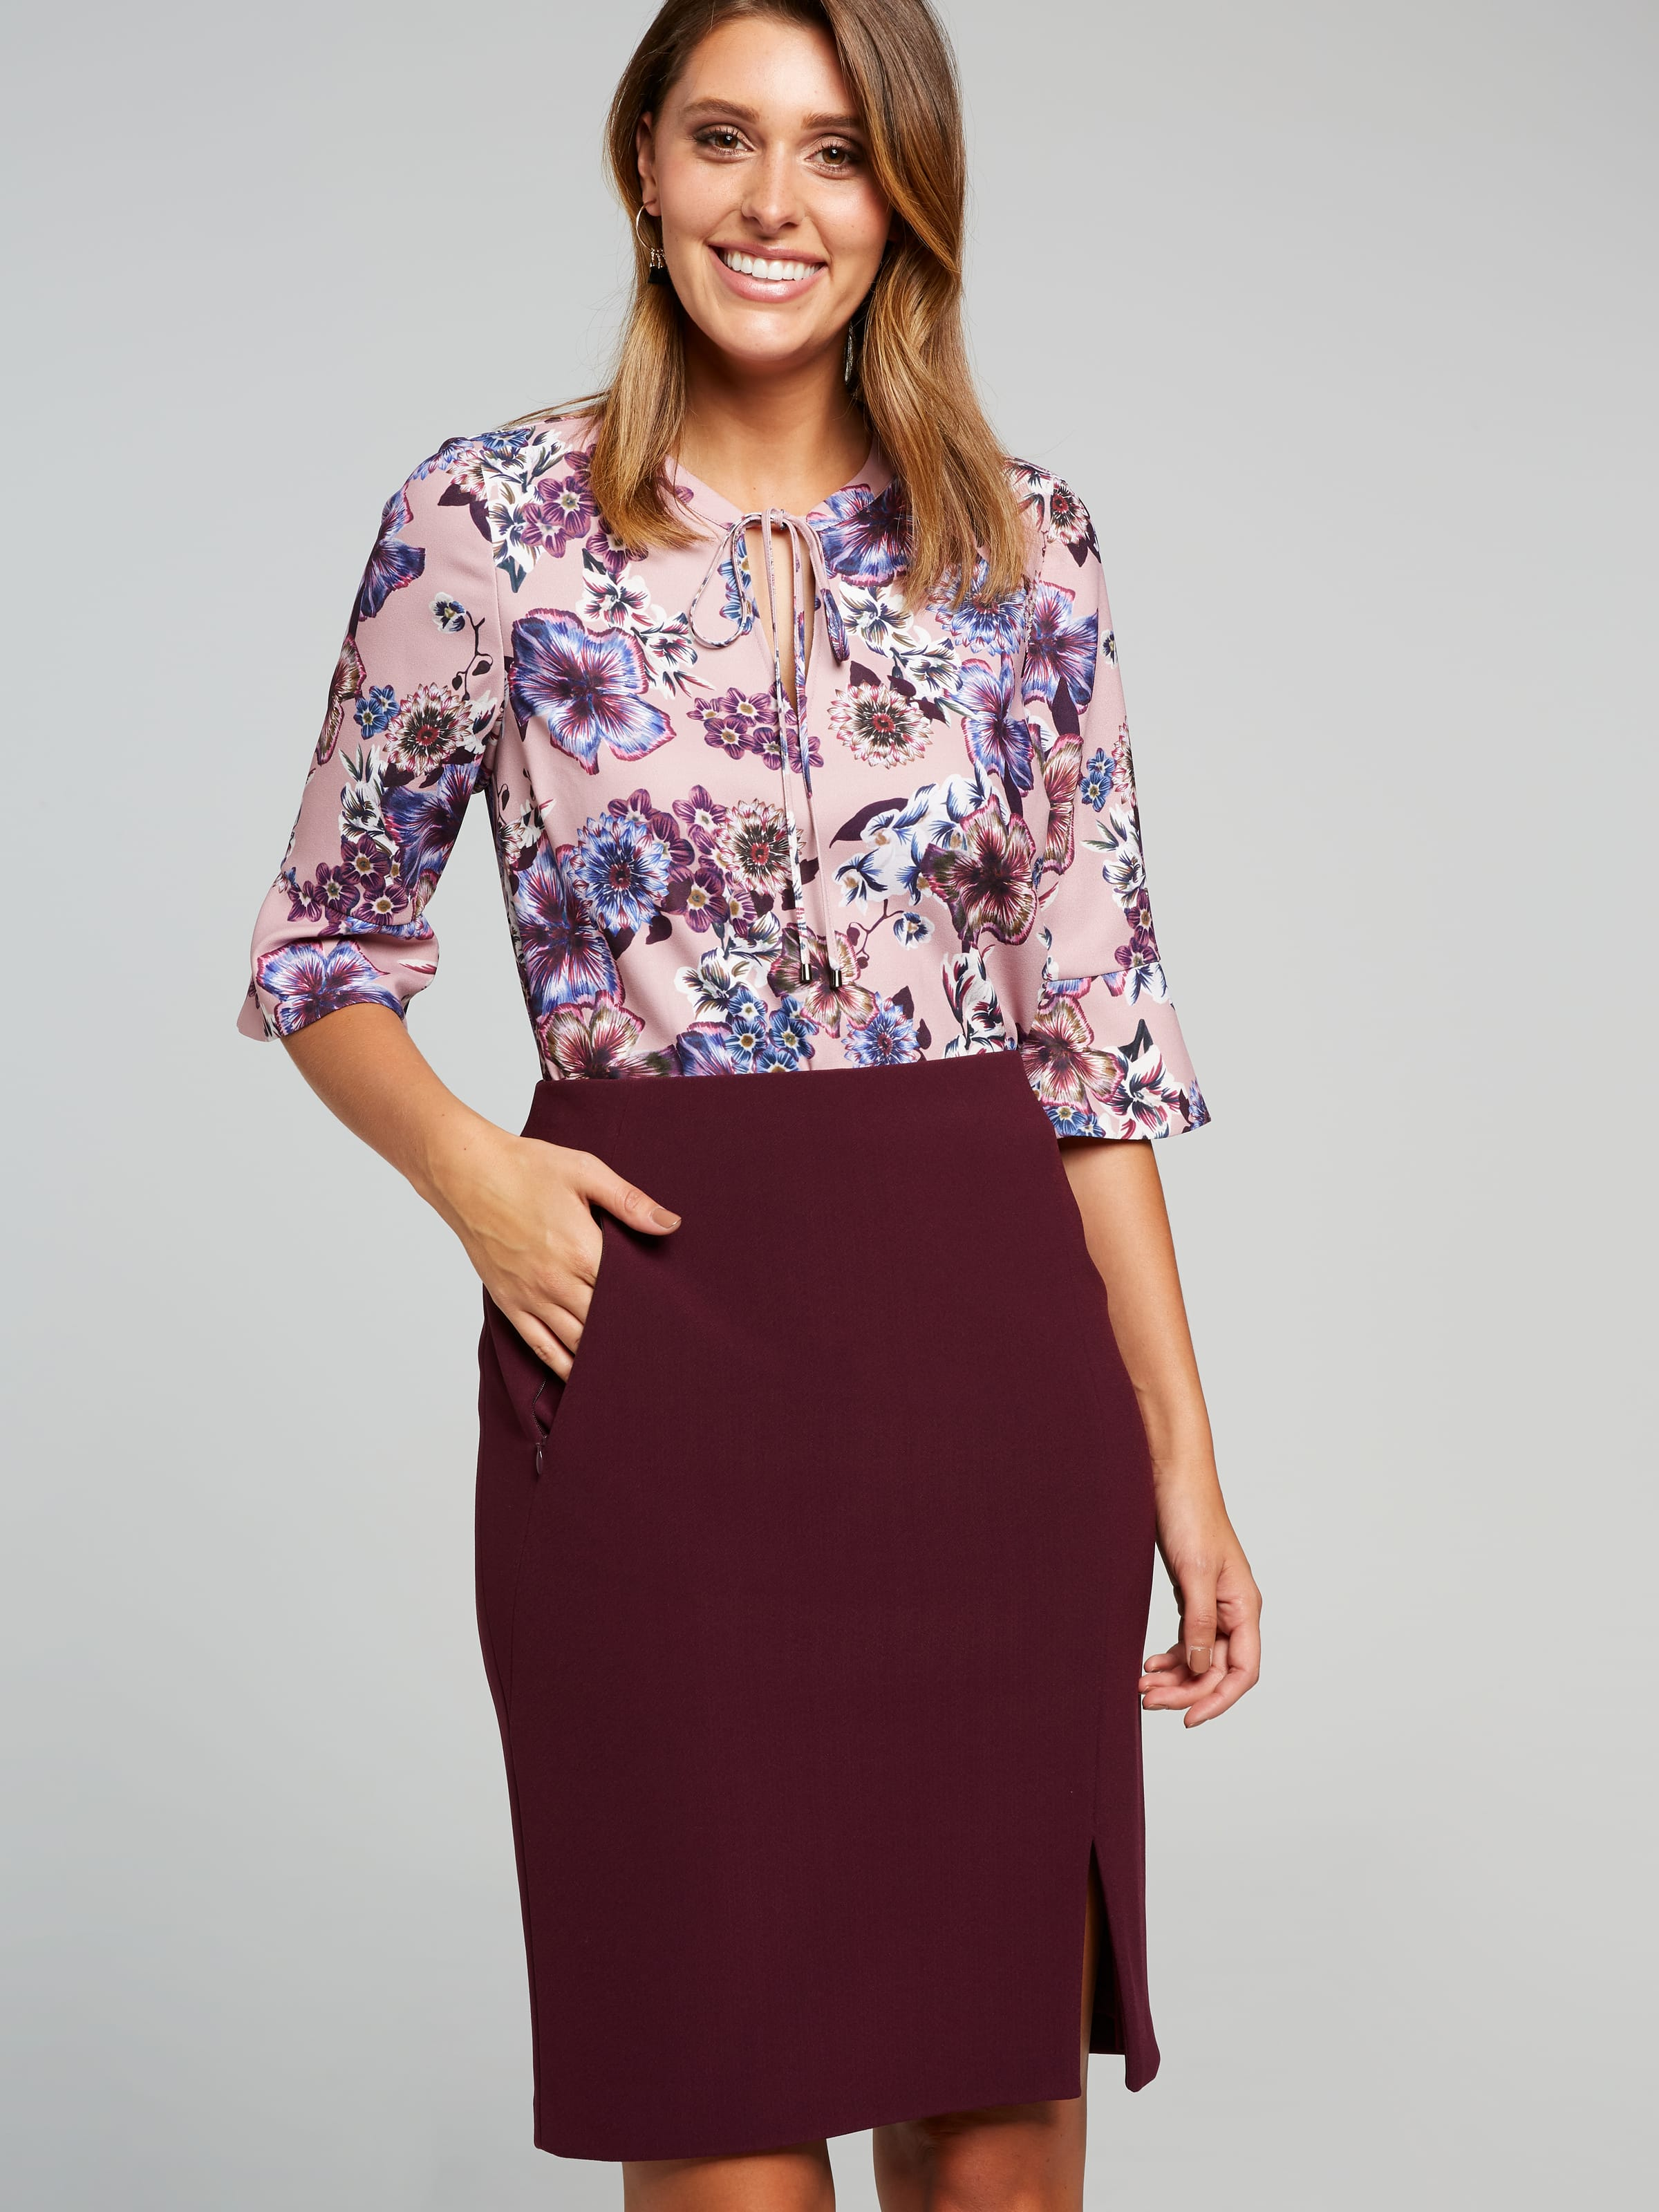 This Rosie Stretch Pencil Skirt Is Made In A Polyester/Elastane Blend Stretch Fabrication For The Ultimate Fit And Comfort. Finishing At The Knee In Length, This Is Your Perfect Work Skirt. Team It Together With A White Blouse And A Pair Of Black Heels.(Plum, 8)